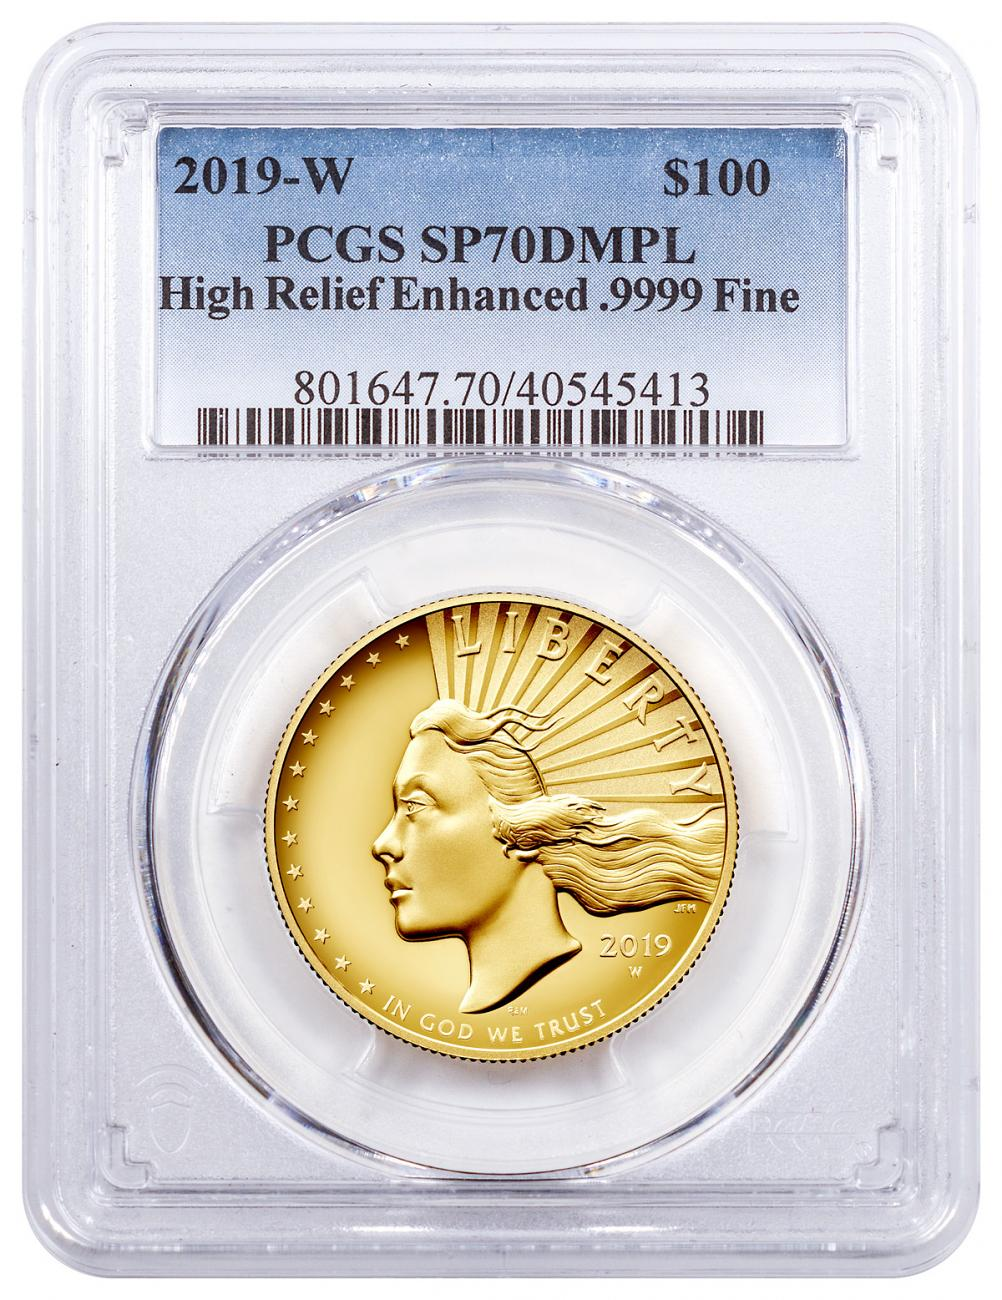 2019-W American Liberty Enhanced Finish High Relief $100 Gold Specimen Coin PCGS SP70 DMPL